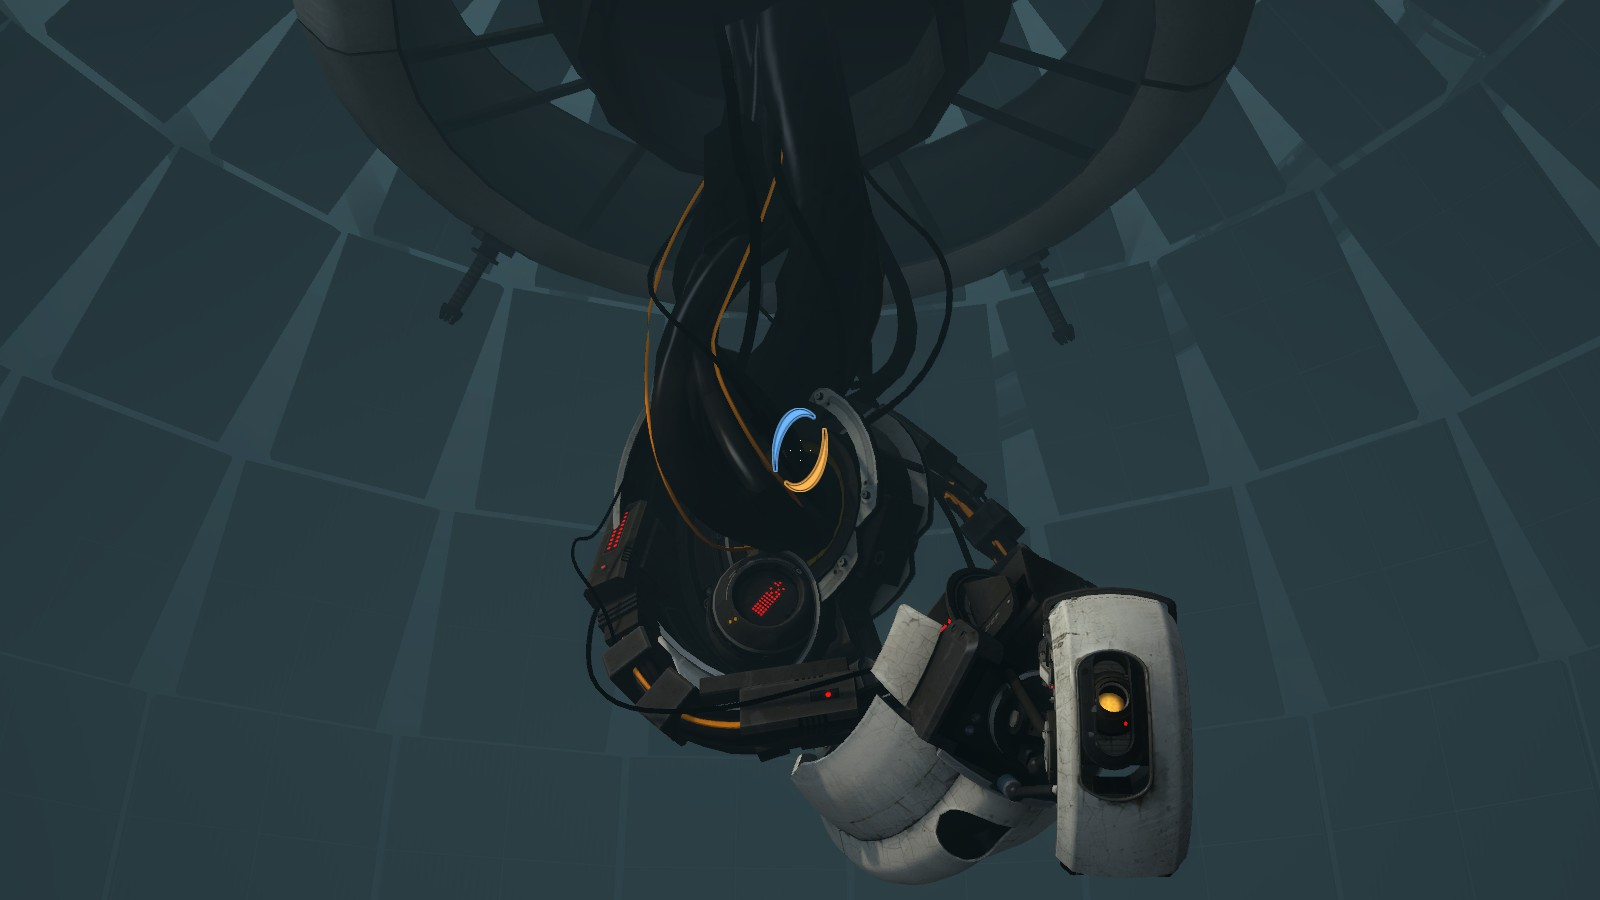 Portal 2 glados by joker4342 on deviantart for 3 portals